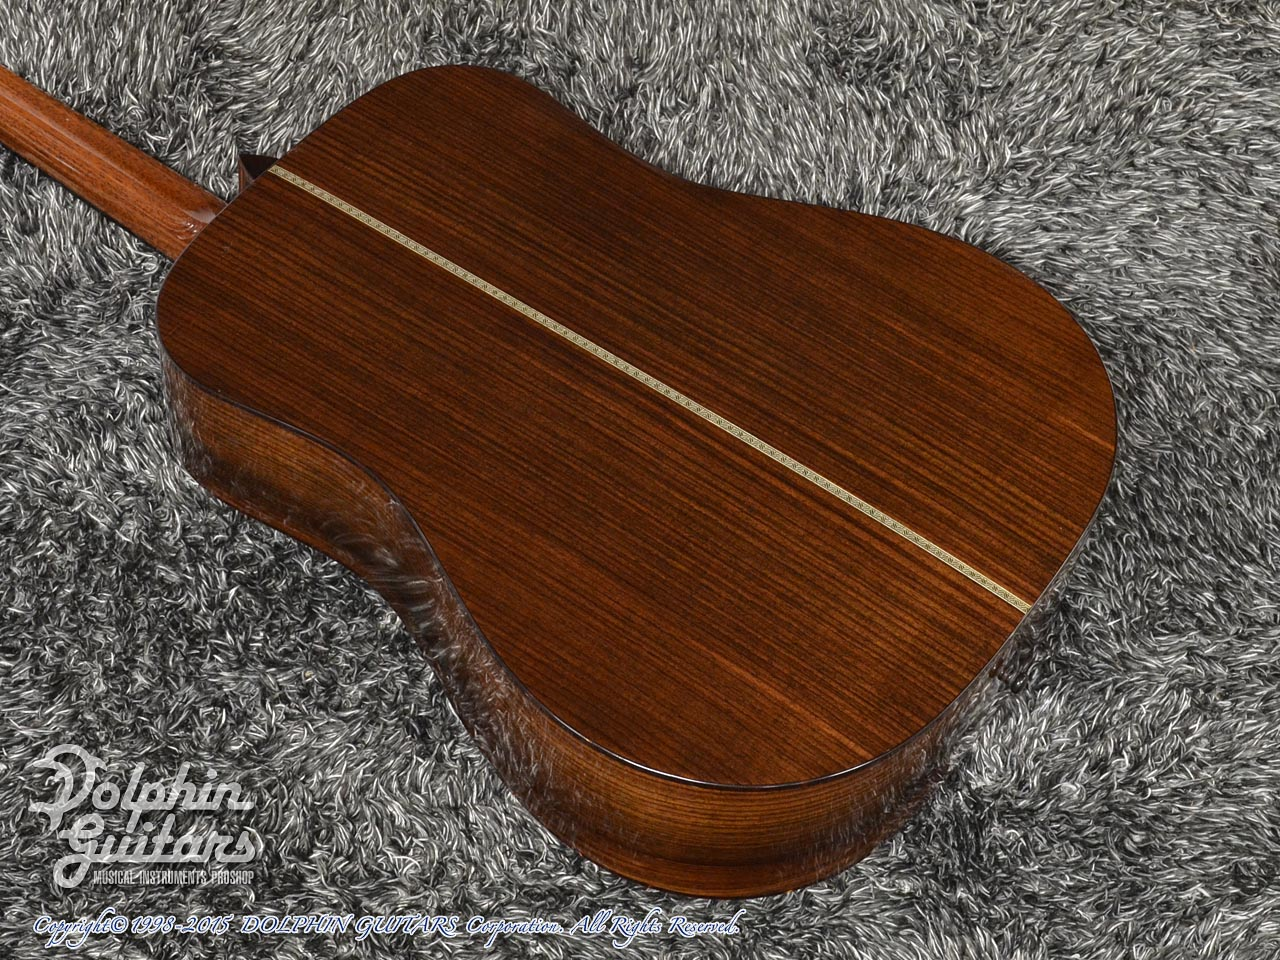 NASHVILLE GUITAR CO.: D Style <Indian Rosewood> (3)